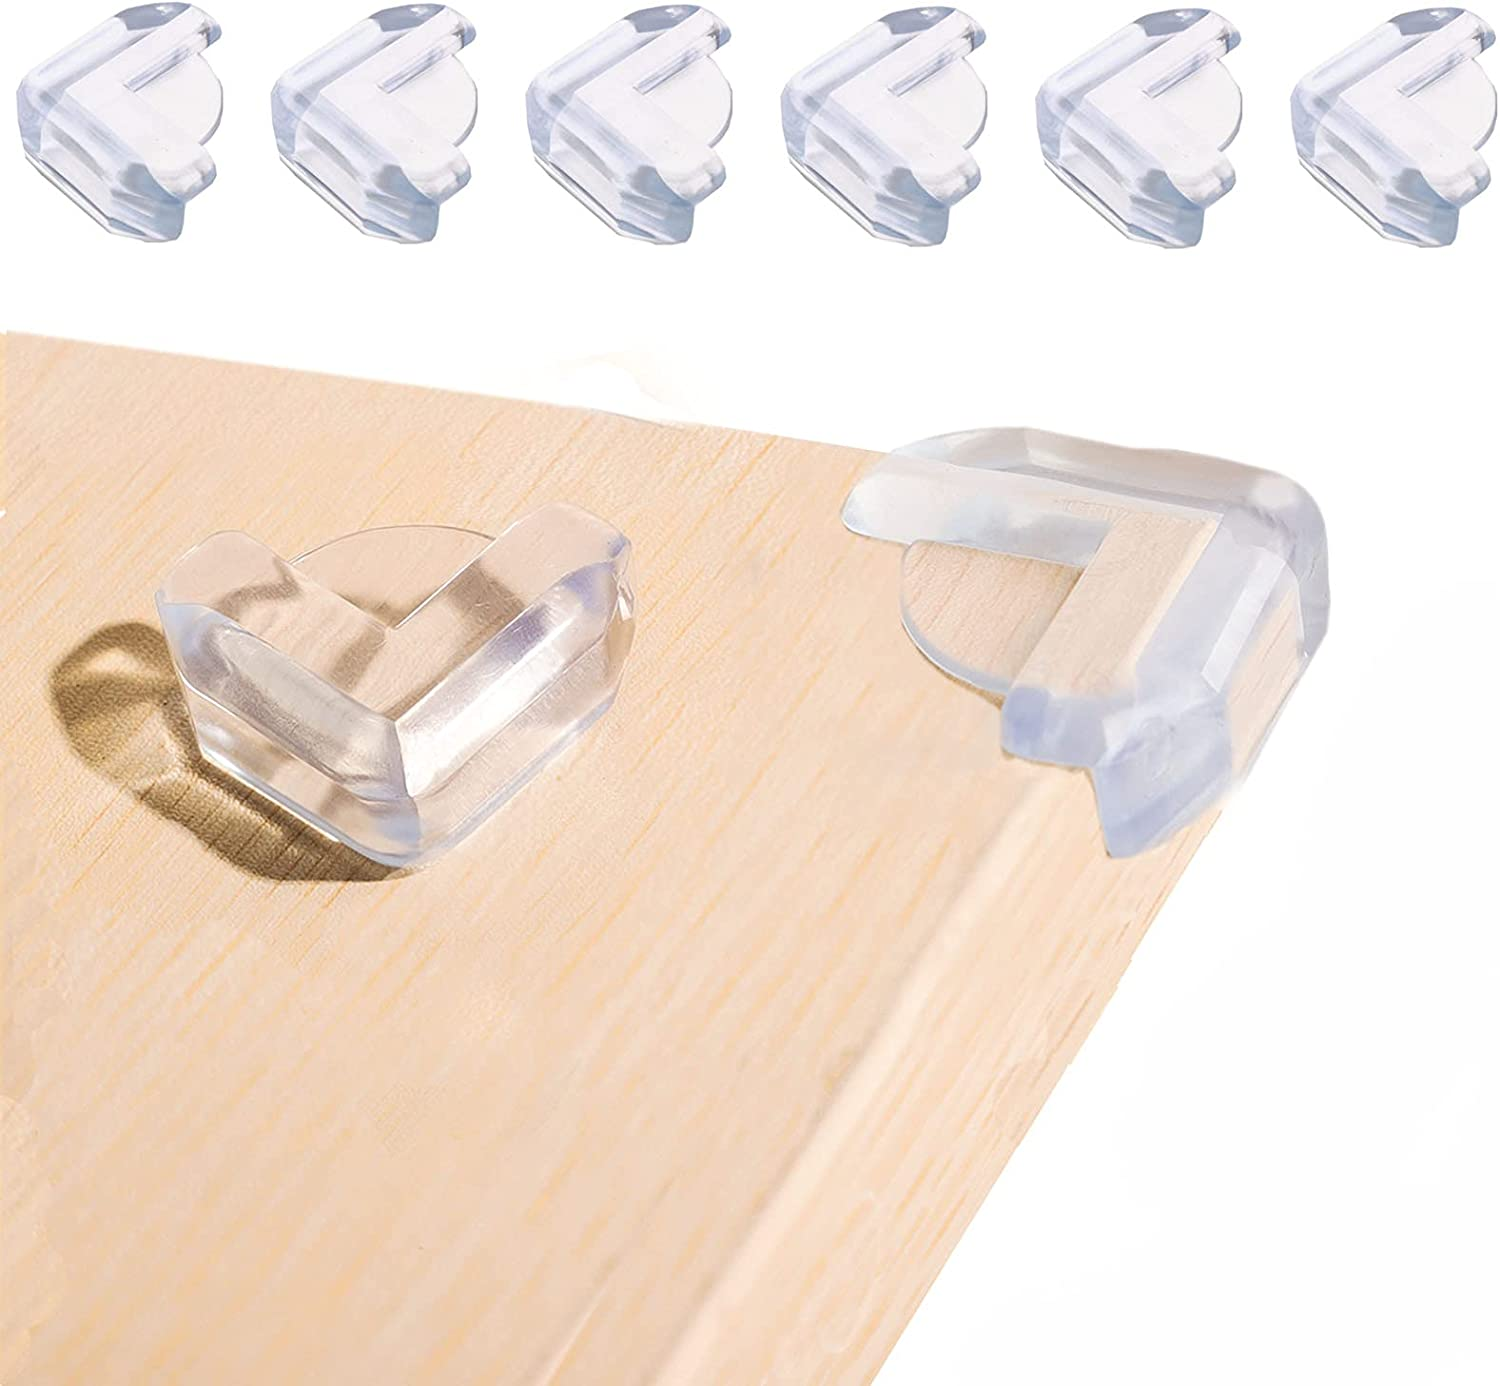 BIAHE Soft Baby Corner Protectors, 8 Pcs Furniture Corner Guards with High Resistant Adhesive, Table Clear Corner Bumpers for Baby Safety, Corner Child Protector for Furniture Against Sharp Corners